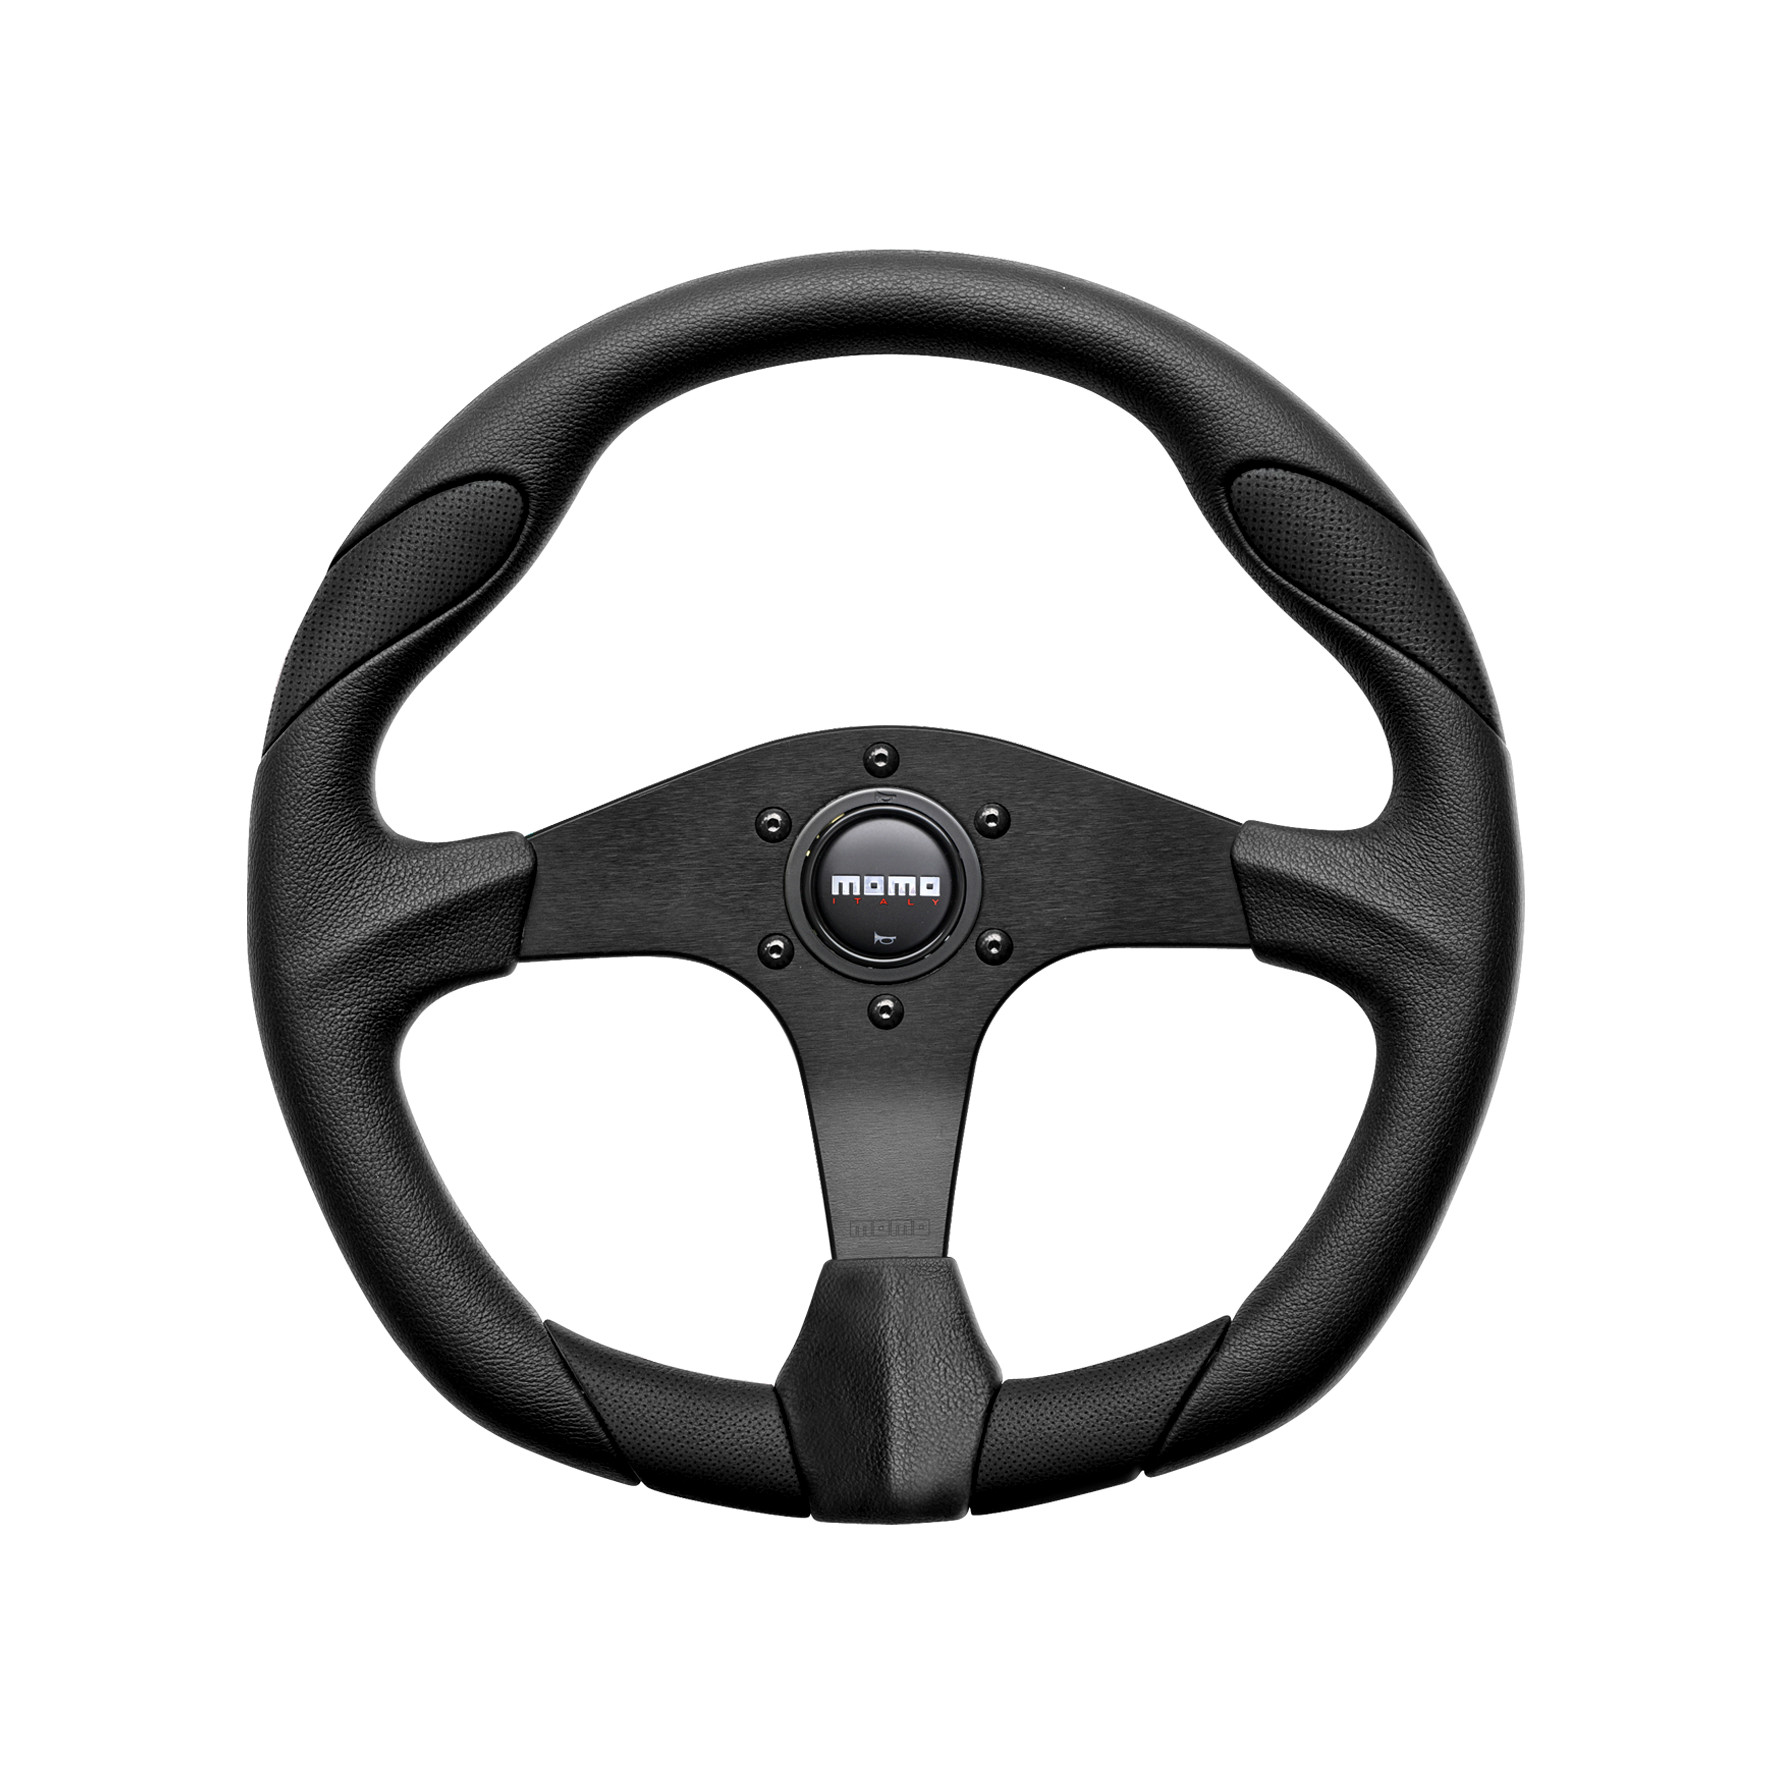 MOMO Steering Wheel Quark Black / Black Leather 350mm